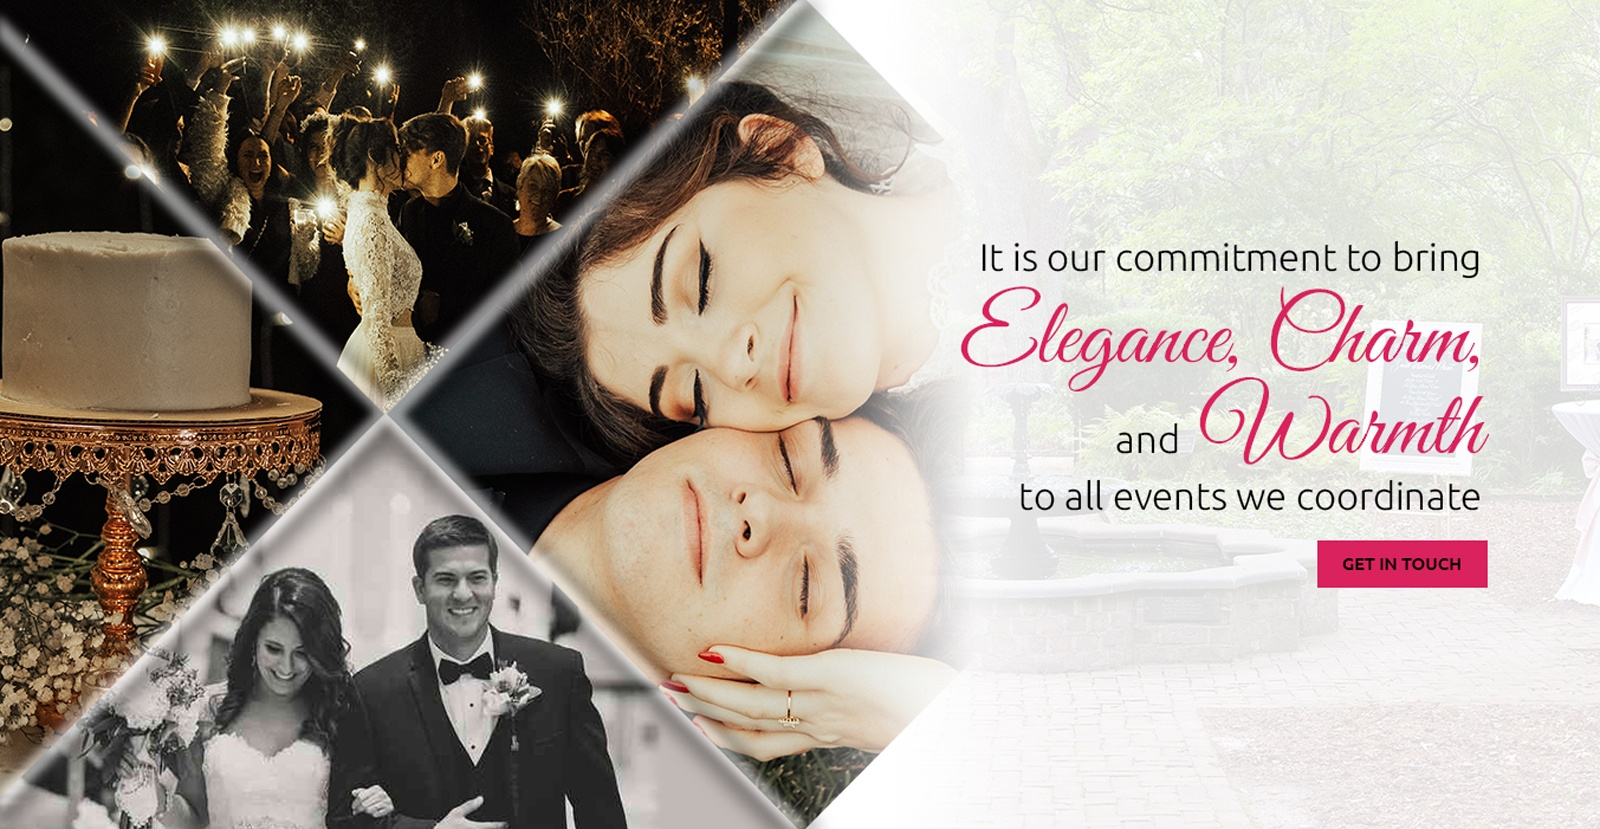 It is our Commitment to bring Elegance, Charm and Warmth to all the events we coordinate